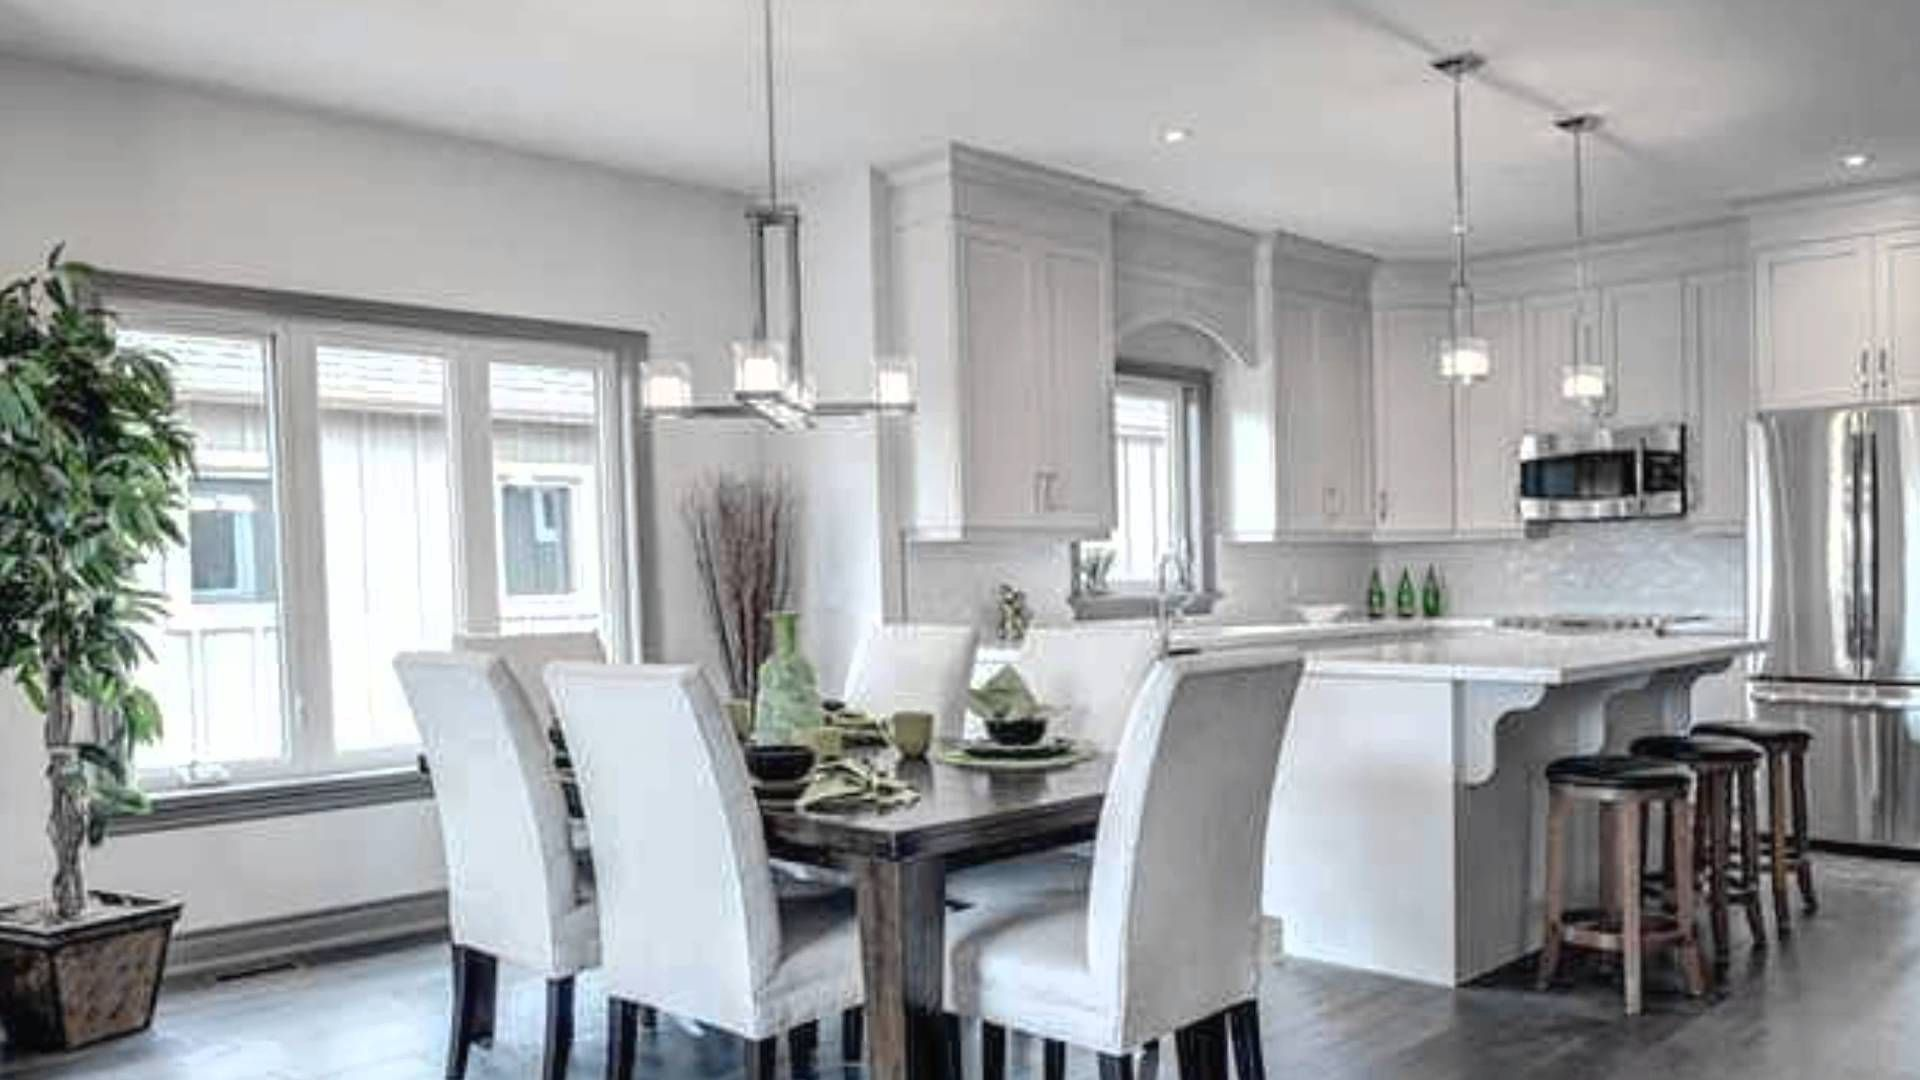 Home staging model homes pictures.